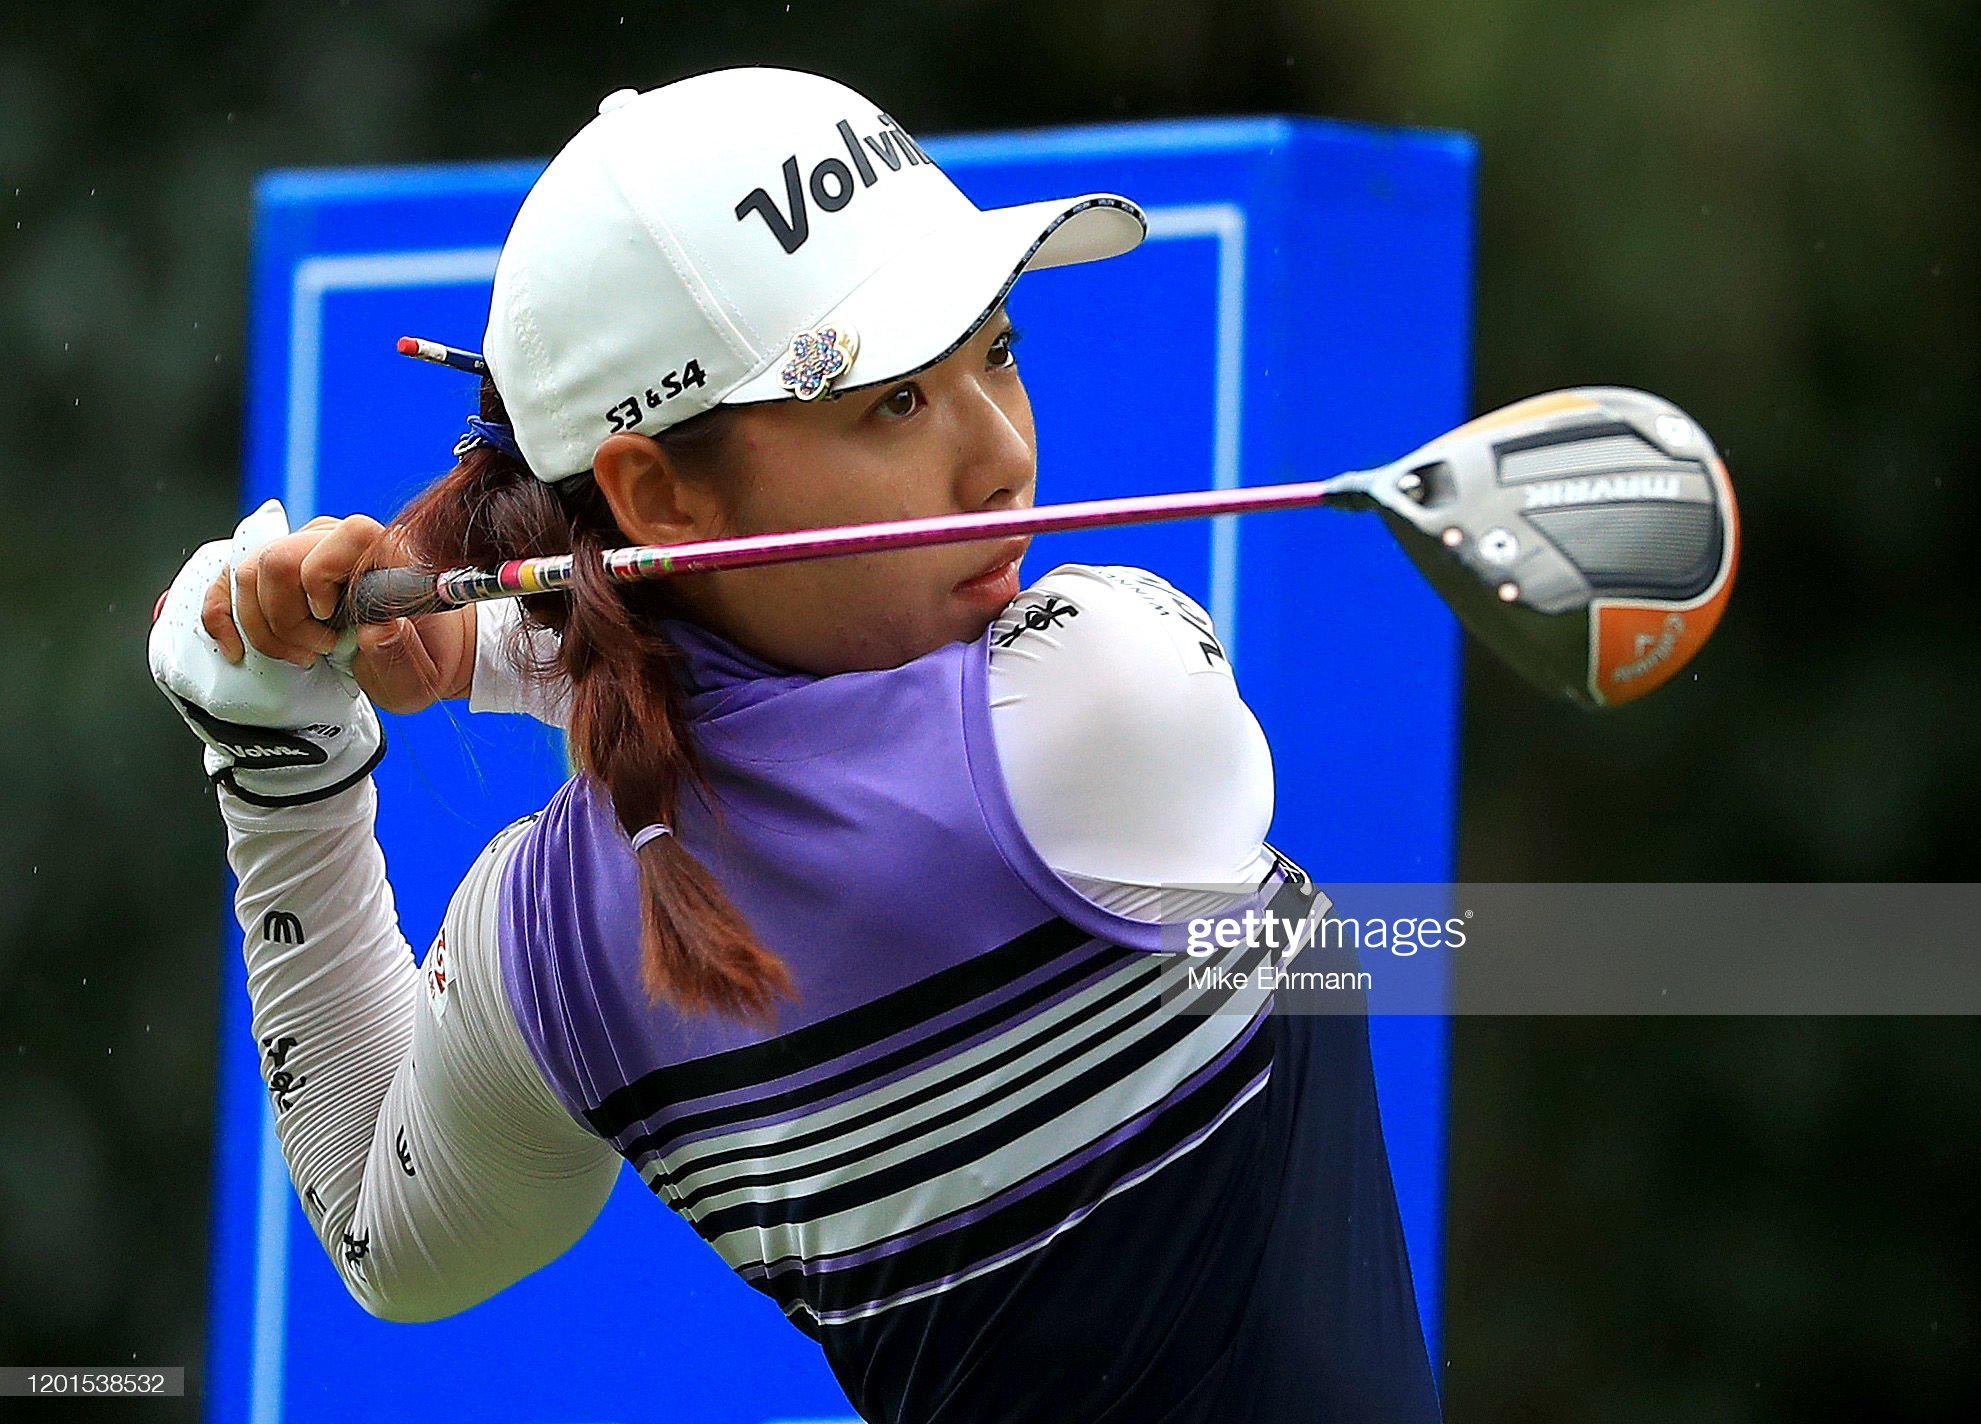 https://media.gettyimages.com/photos/mi-hyang-lee-of-koreahits-her-tee-shot-on-the-15th-hole-during-the-picture-id1201538532?s=2048x2048